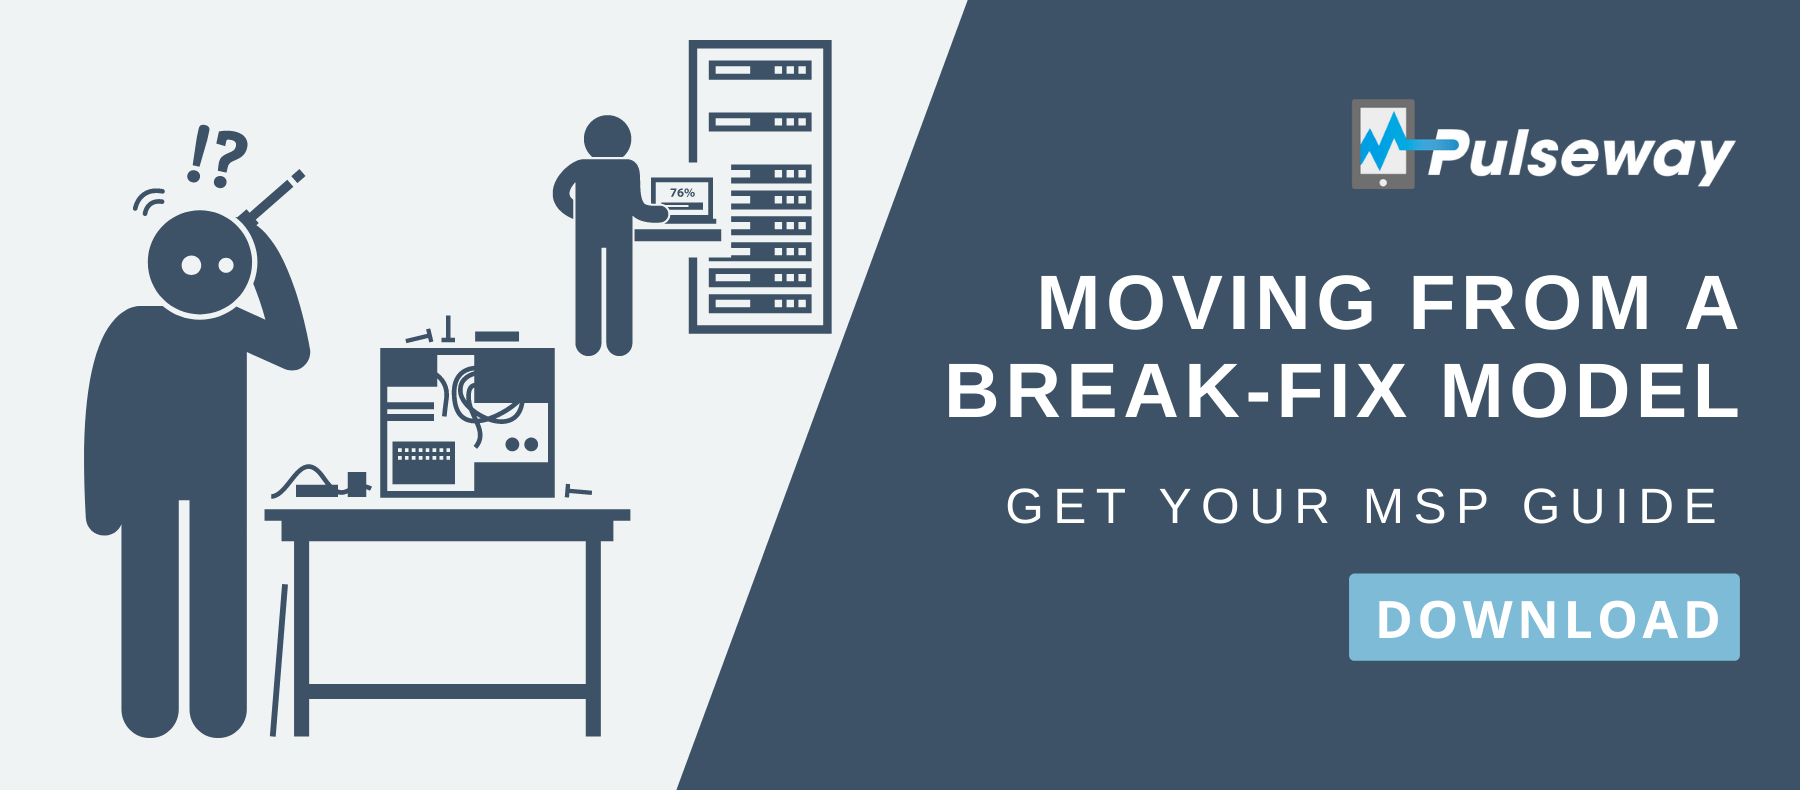 How to Move from a Break-Fix Model